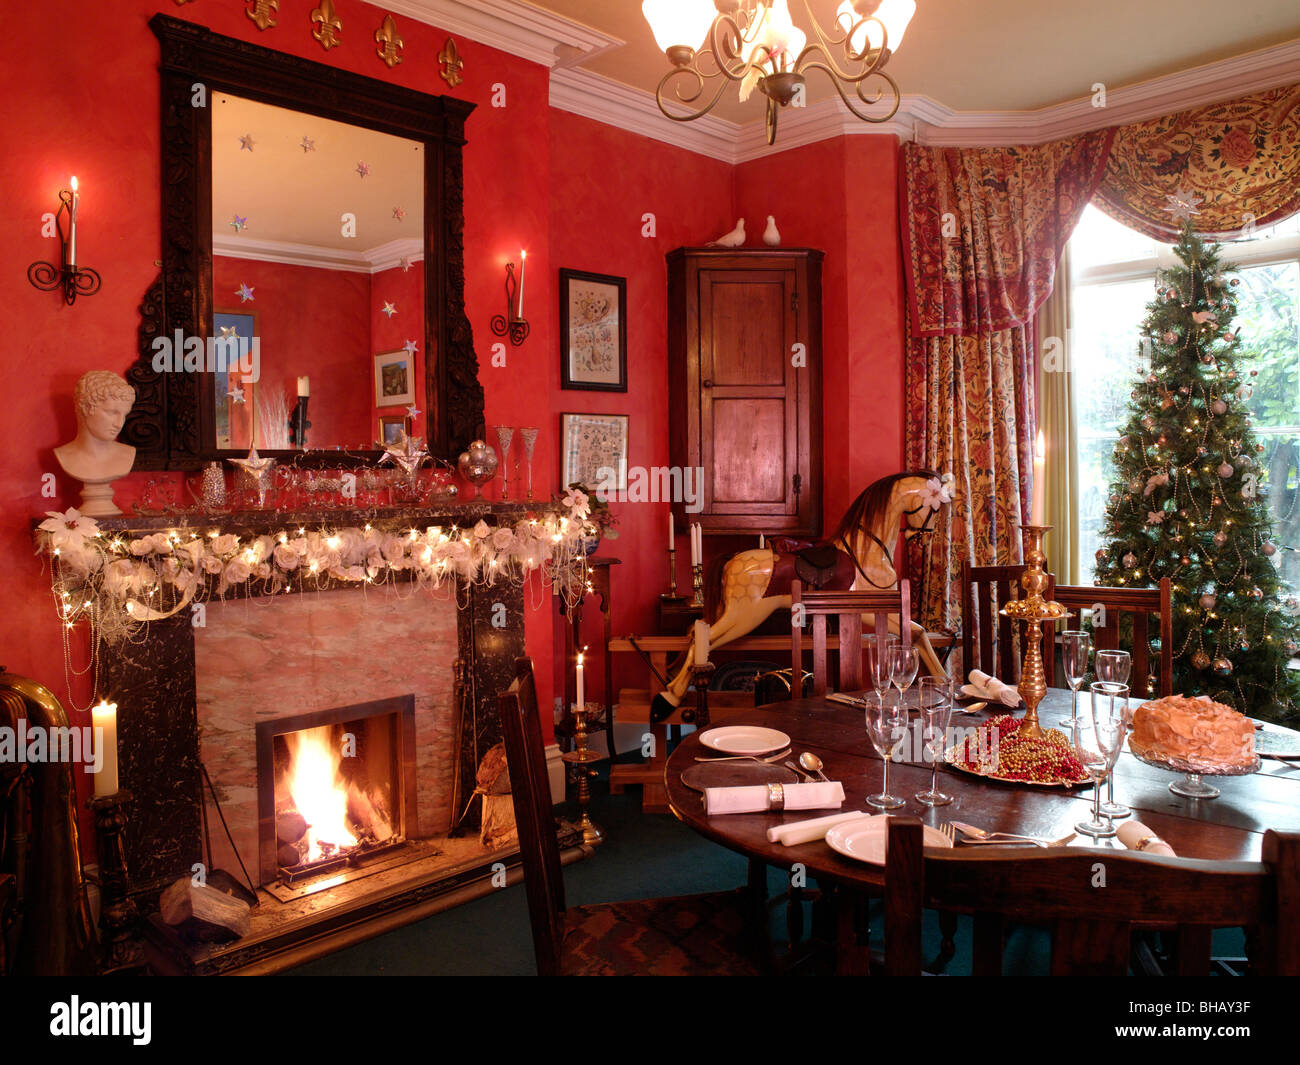 Weihnachtsbilder Usa.Christmas Images Including Christmas Dining Tables Front Doors